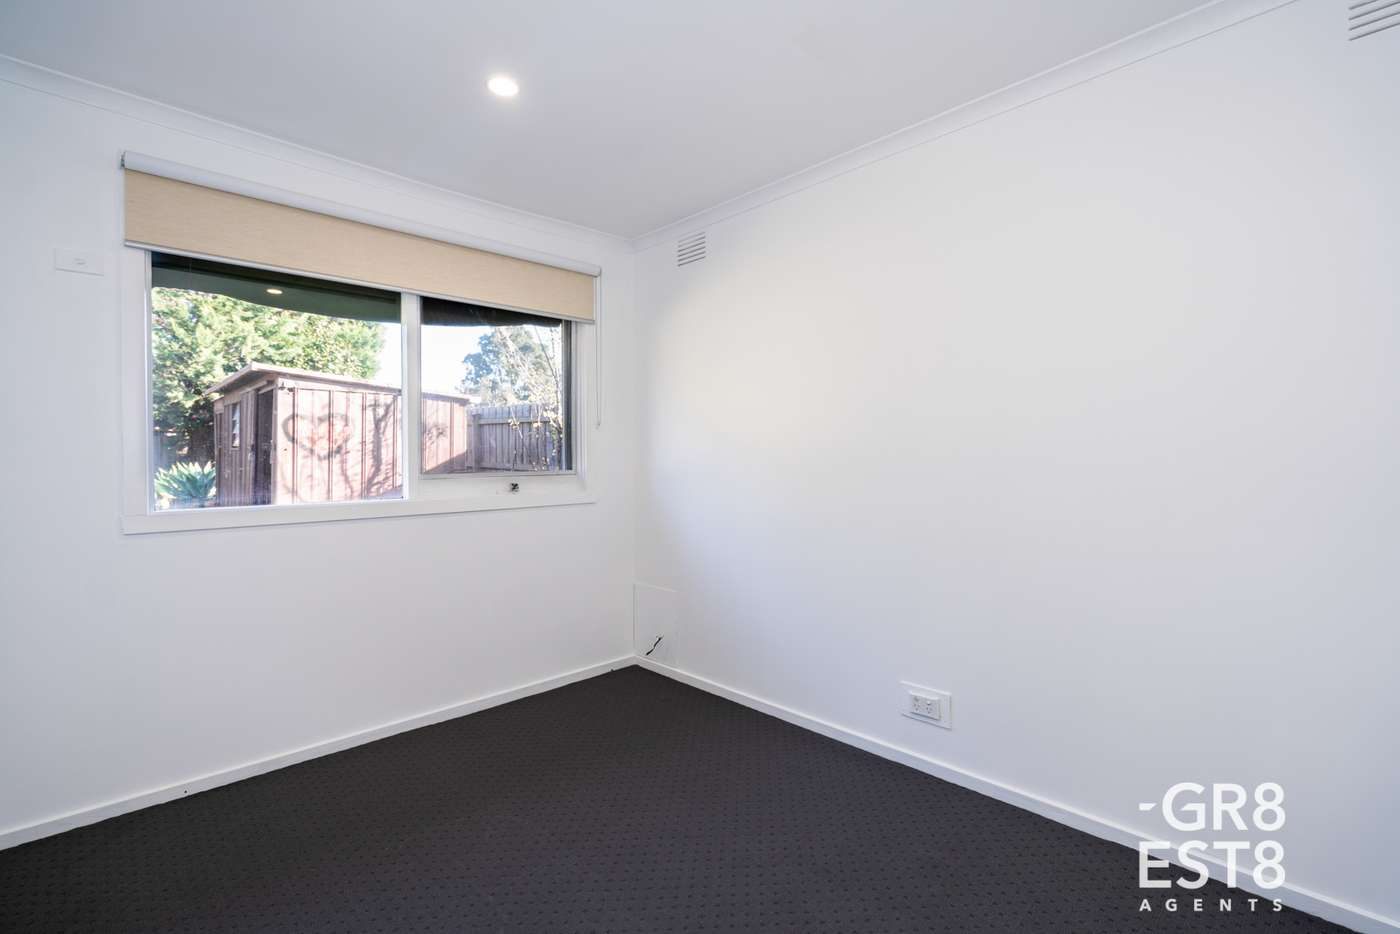 Seventh view of Homely house listing, 33 Dunbar Avenue, Cranbourne VIC 3977